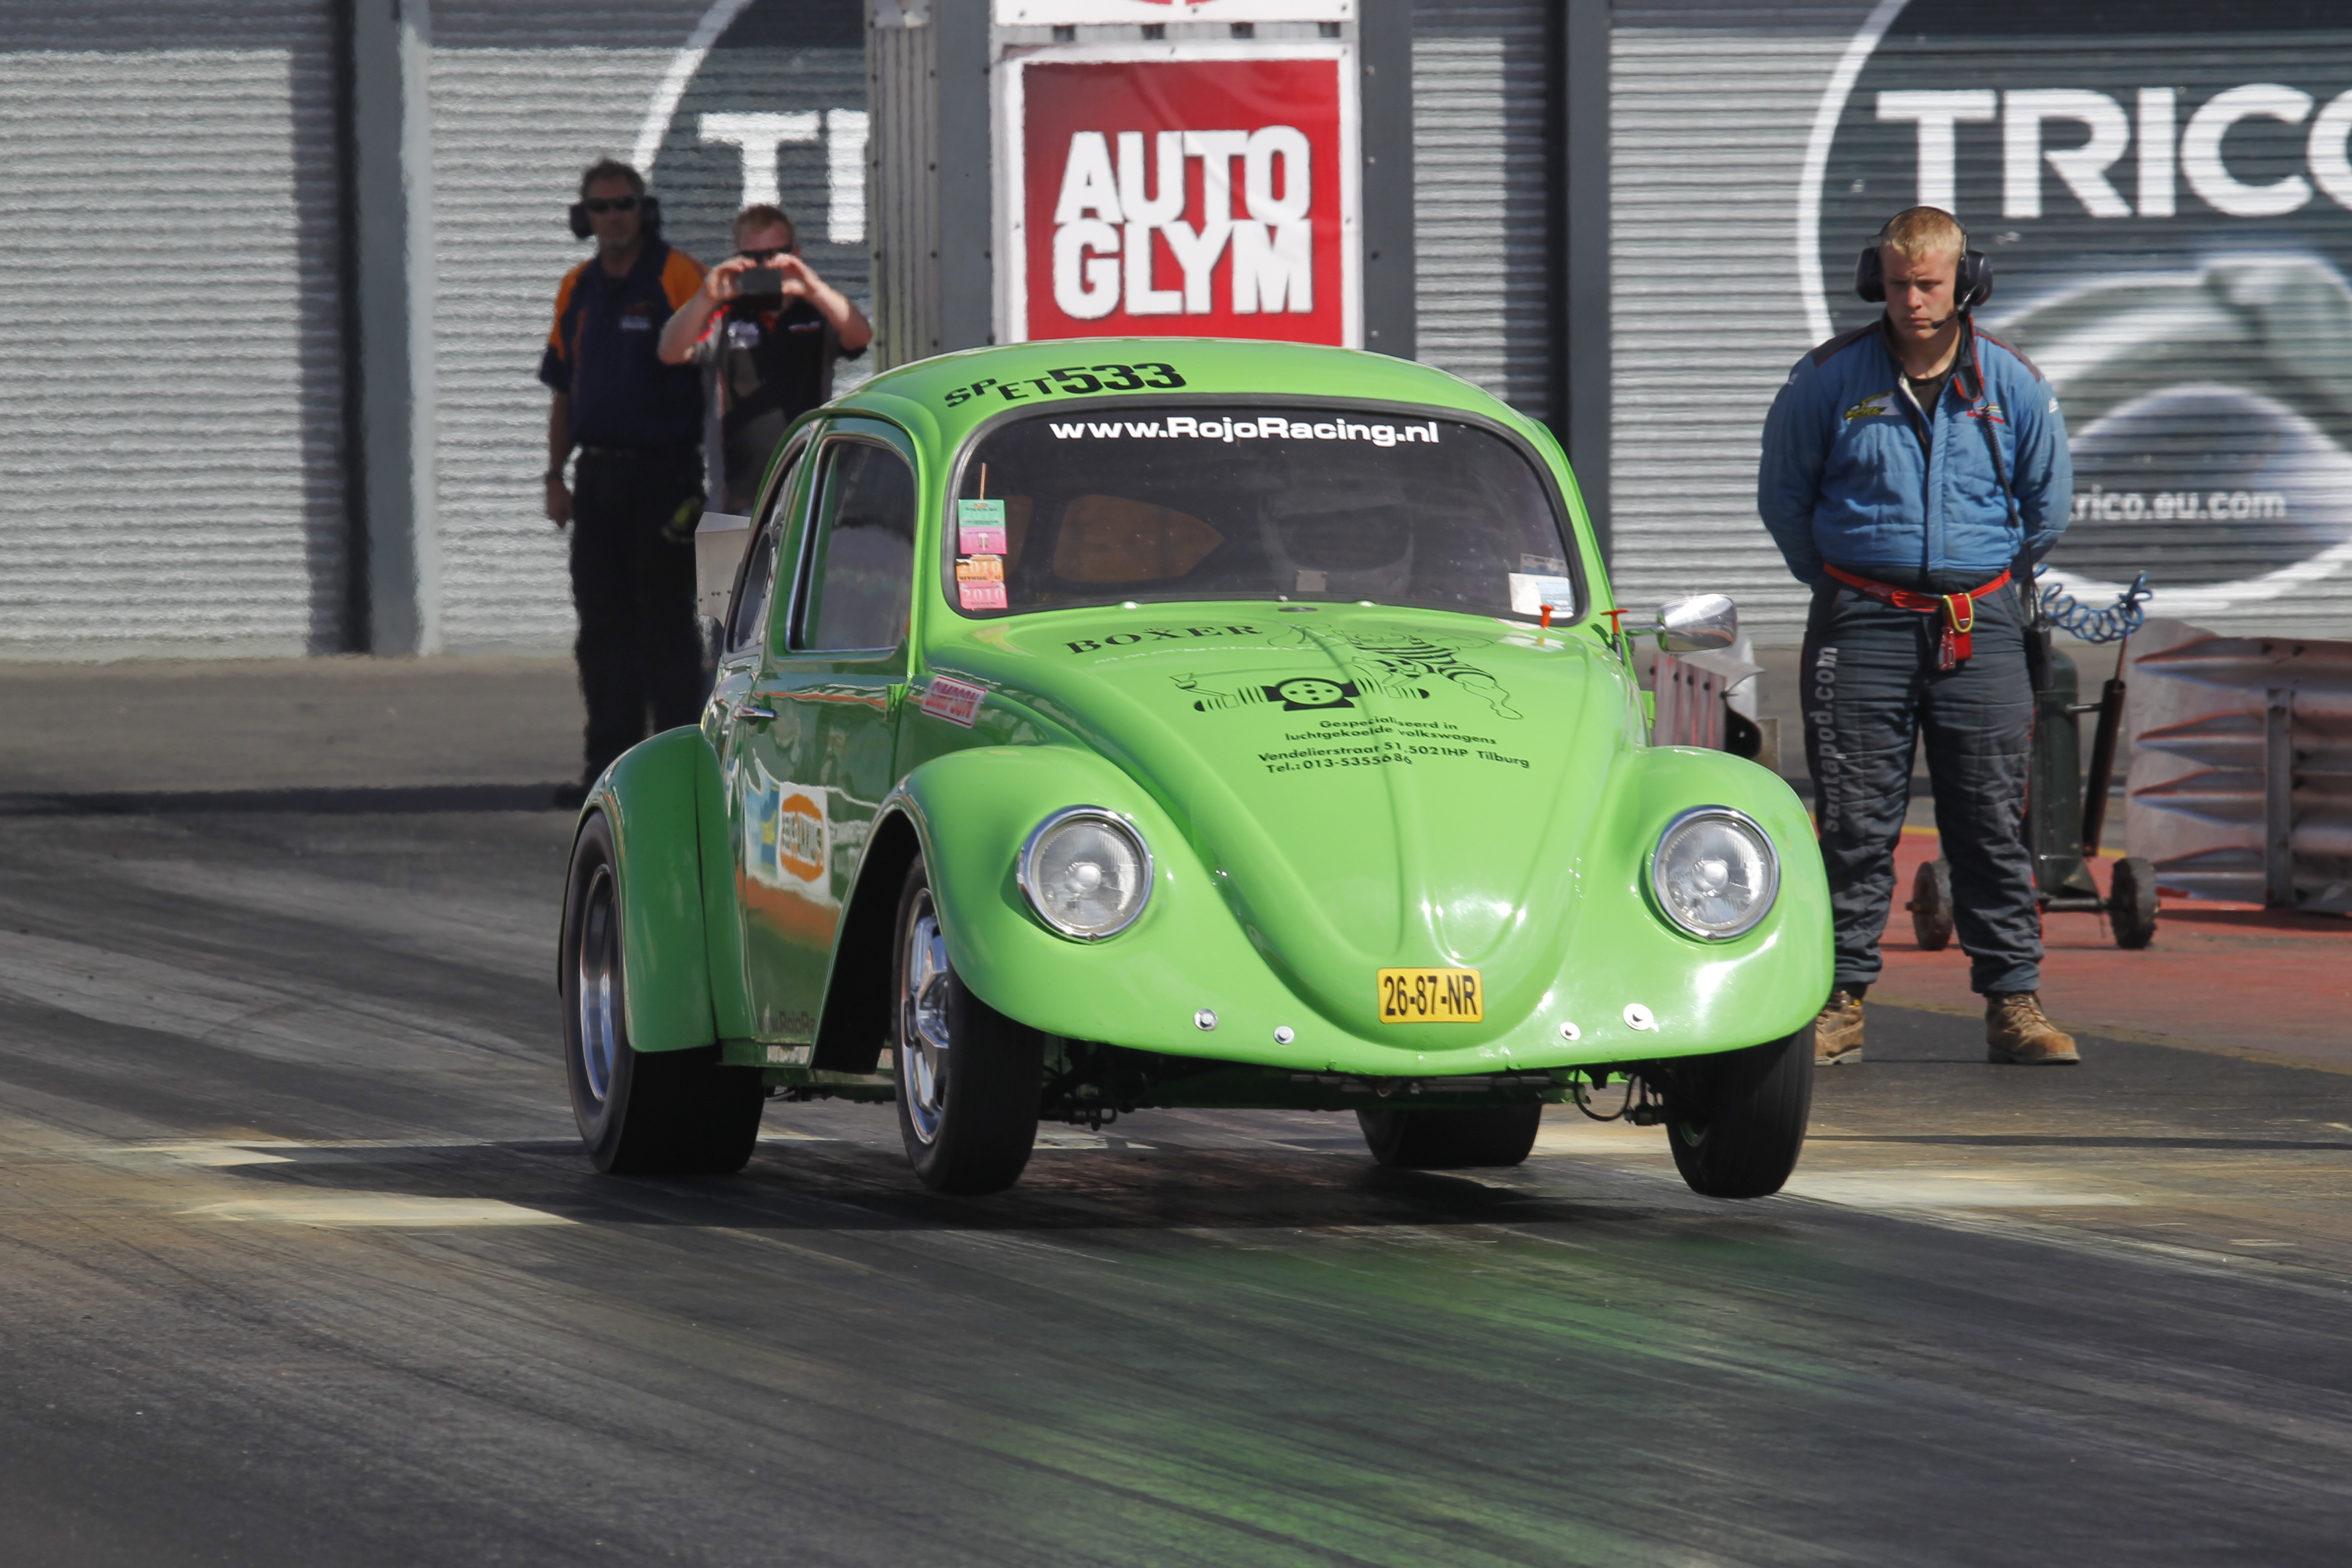 Car at Santapod